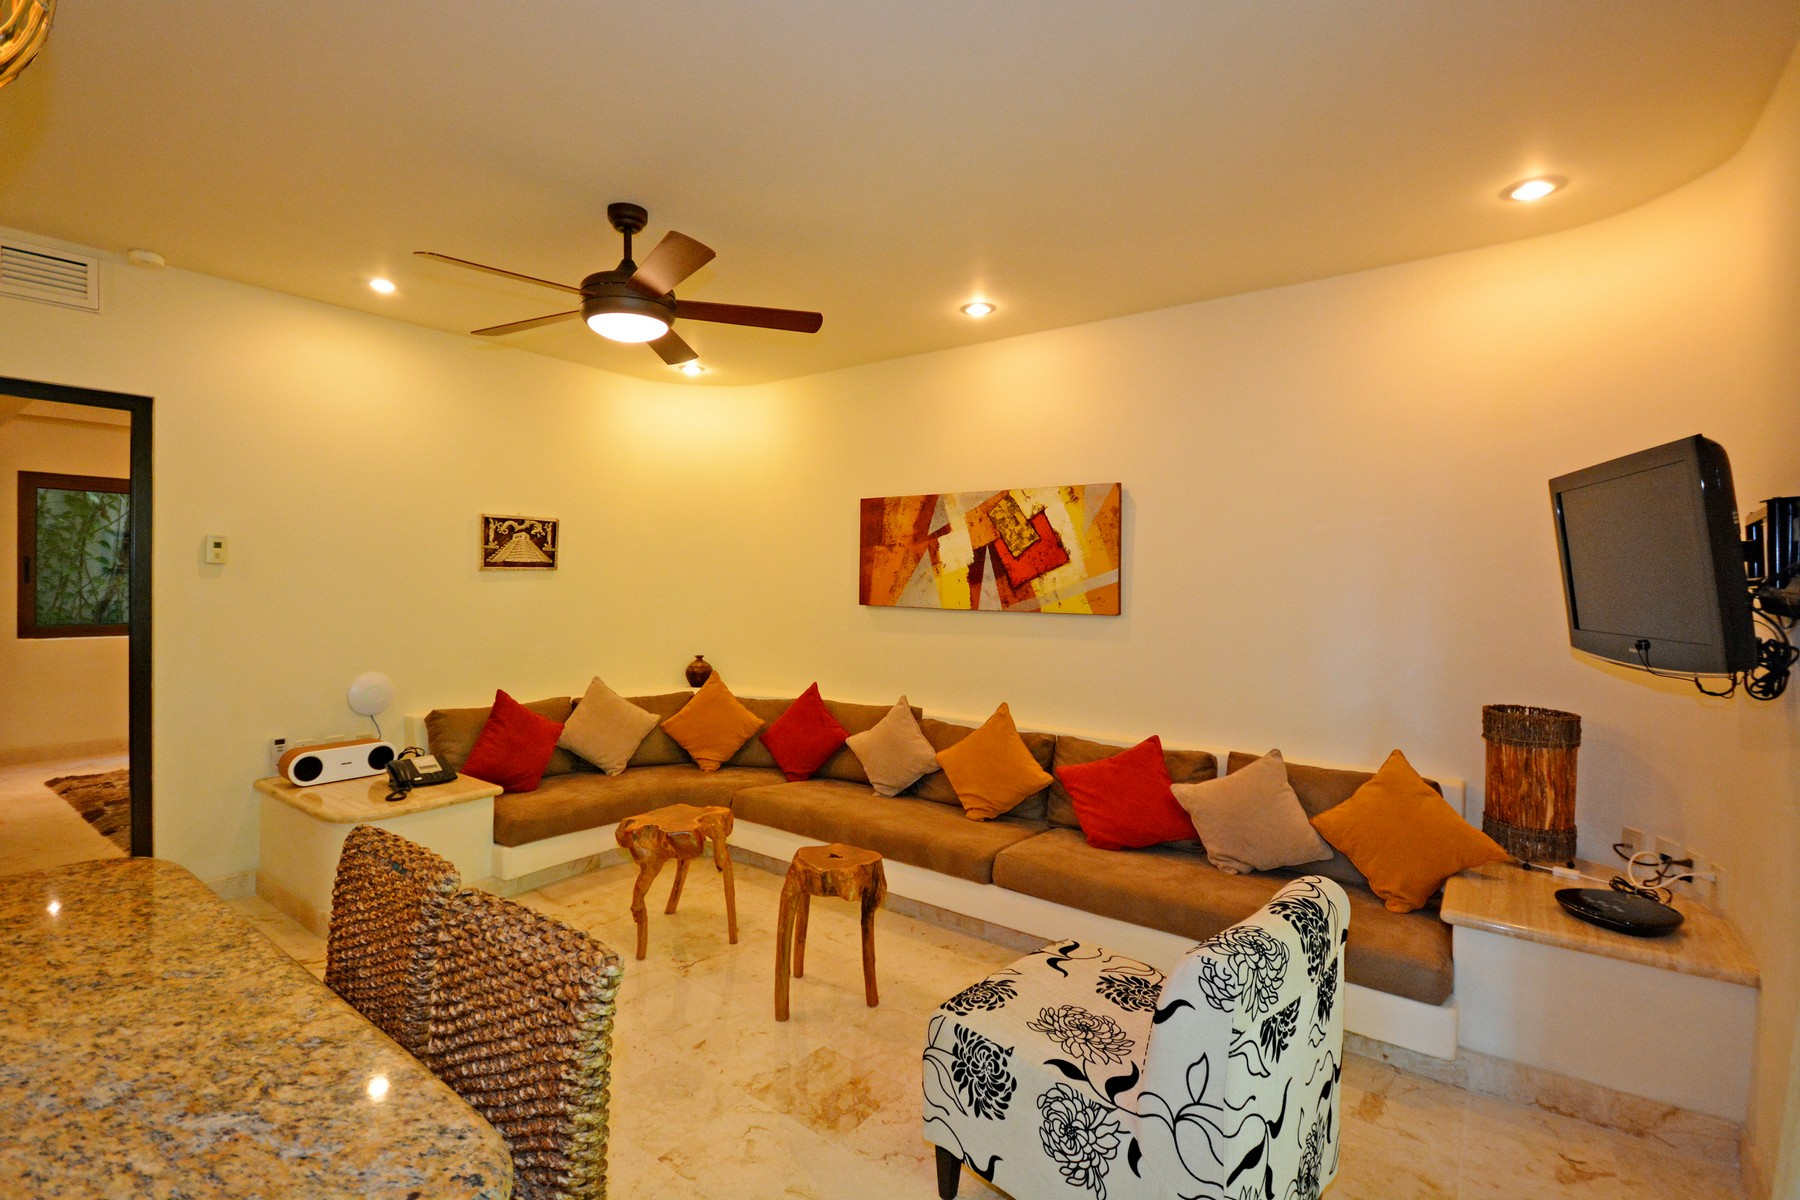 Additional photo for property listing at LUJOSO  APARTAMENTO ESTILO BALINÉS Oceanfront,  Santuary Level, El Taj Calle 1era Nte, entre 12 y 14 Nte. Playa Del Carmen, Quintana Roo 77710 México